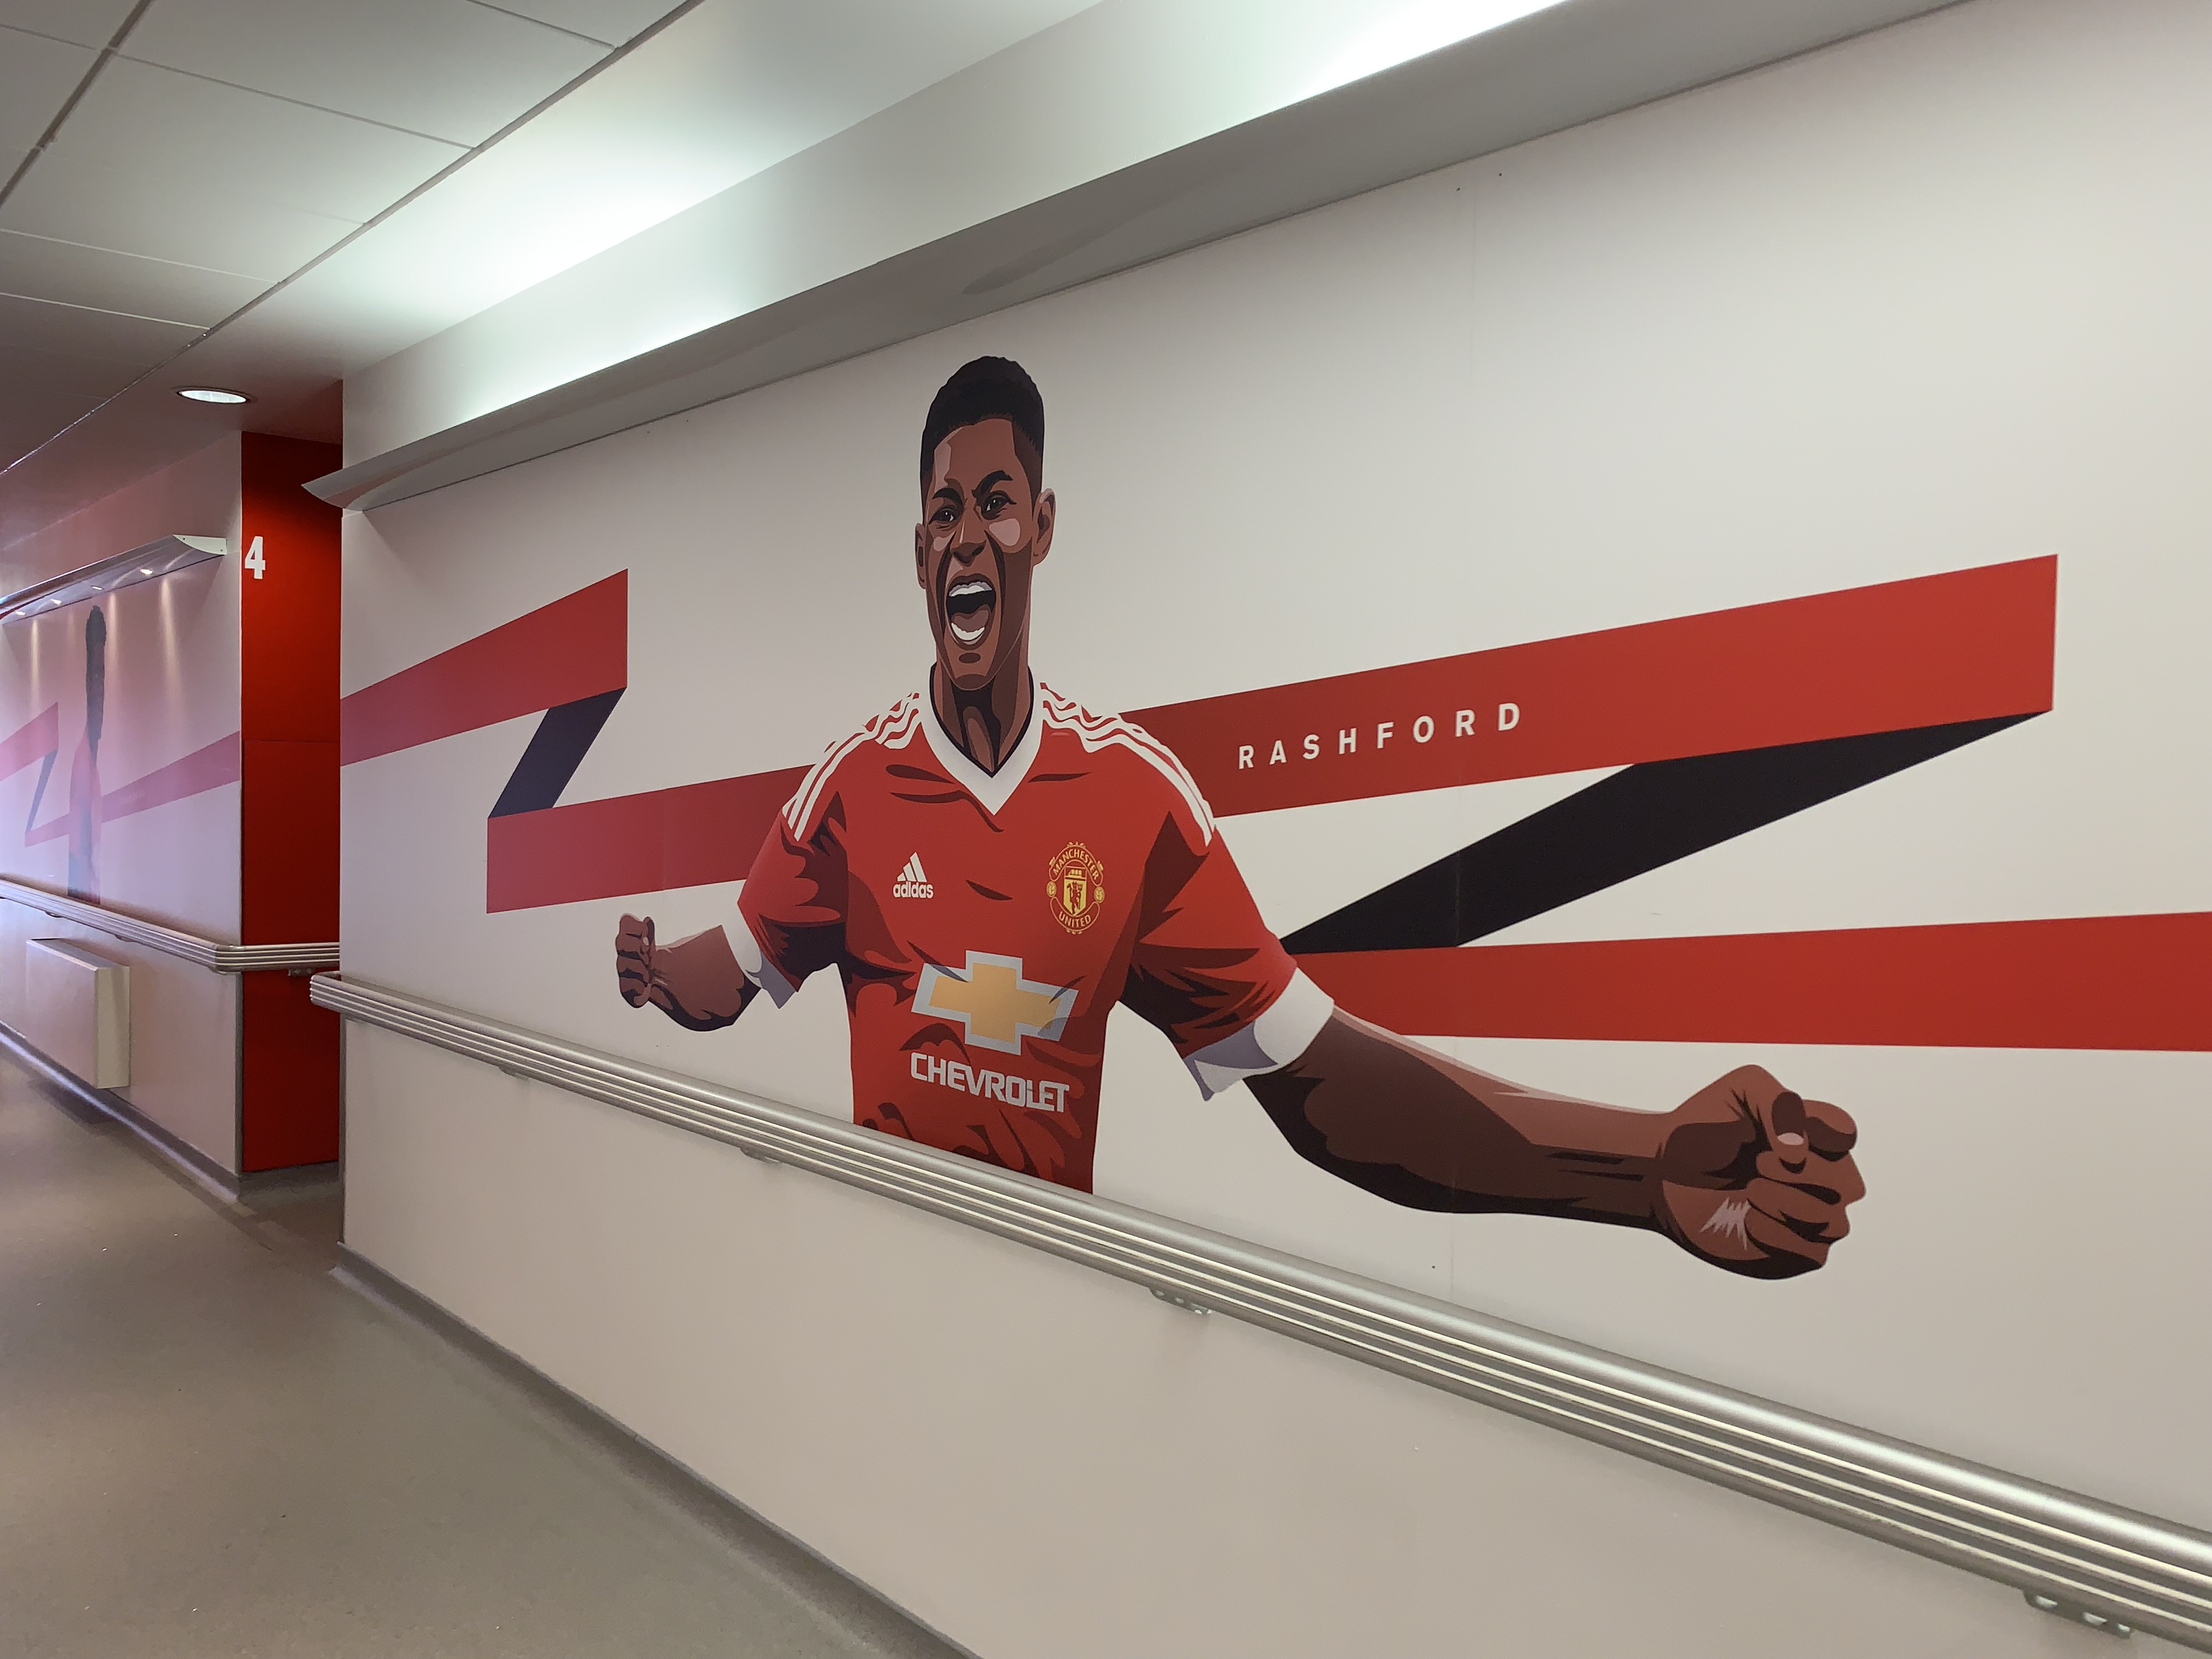 Image of Marcus Rashford on the wall at the Aon Training Complex